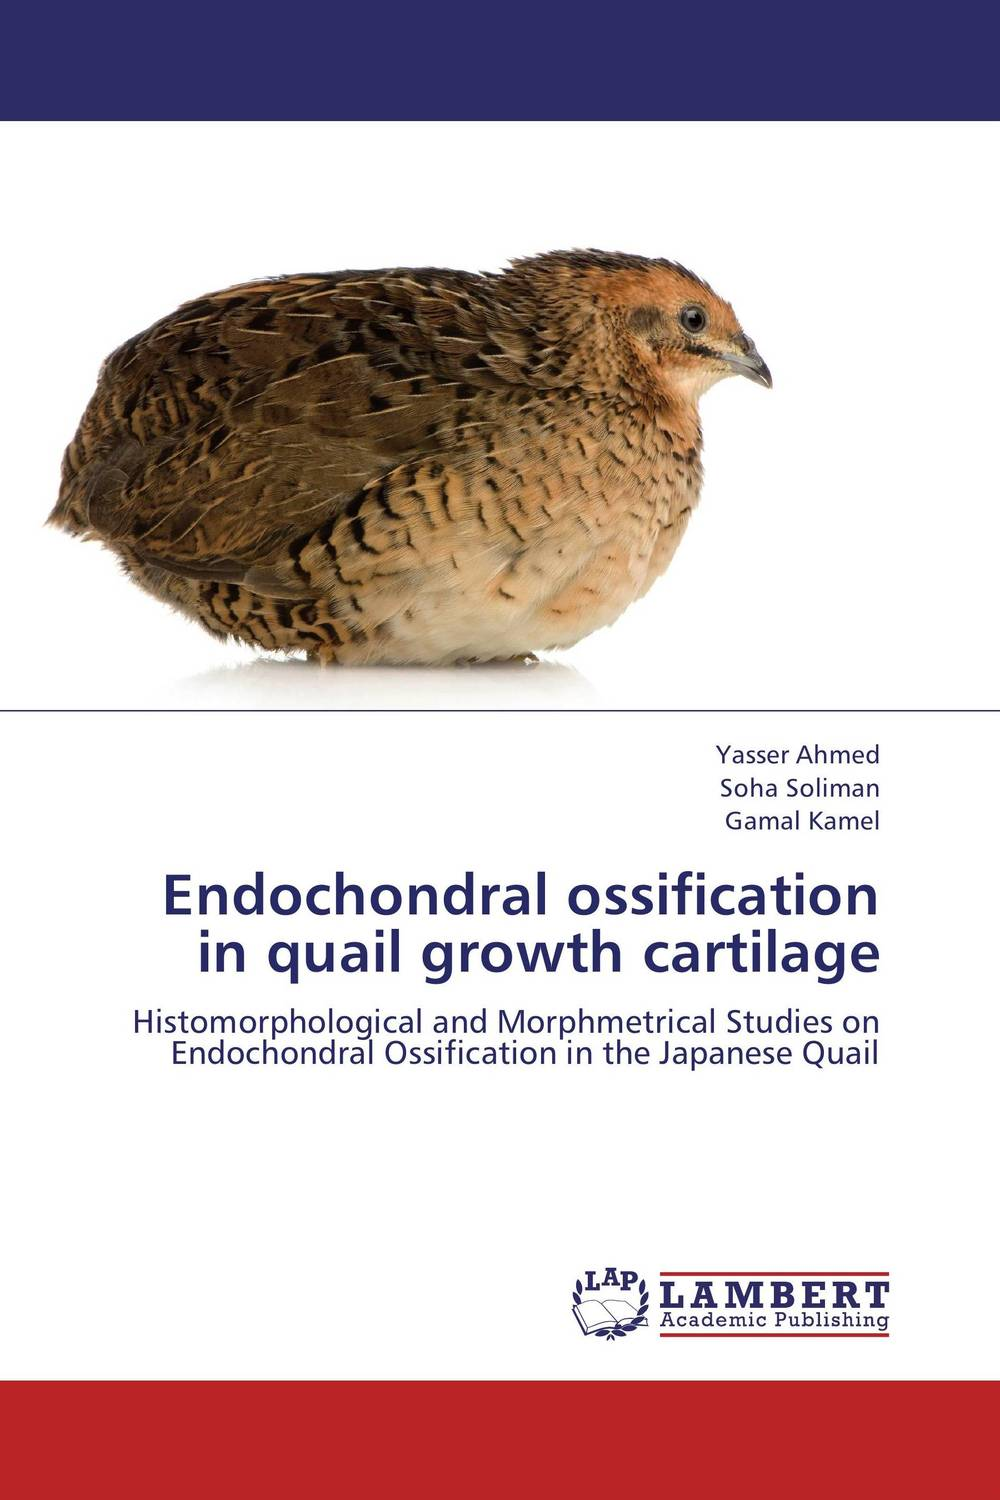 Endochondral ossification in quail growth cartilage arcade ndoricimpa inflation output growth and their uncertainties in south africa empirical evidence from an asymmetric multivariate garch m model